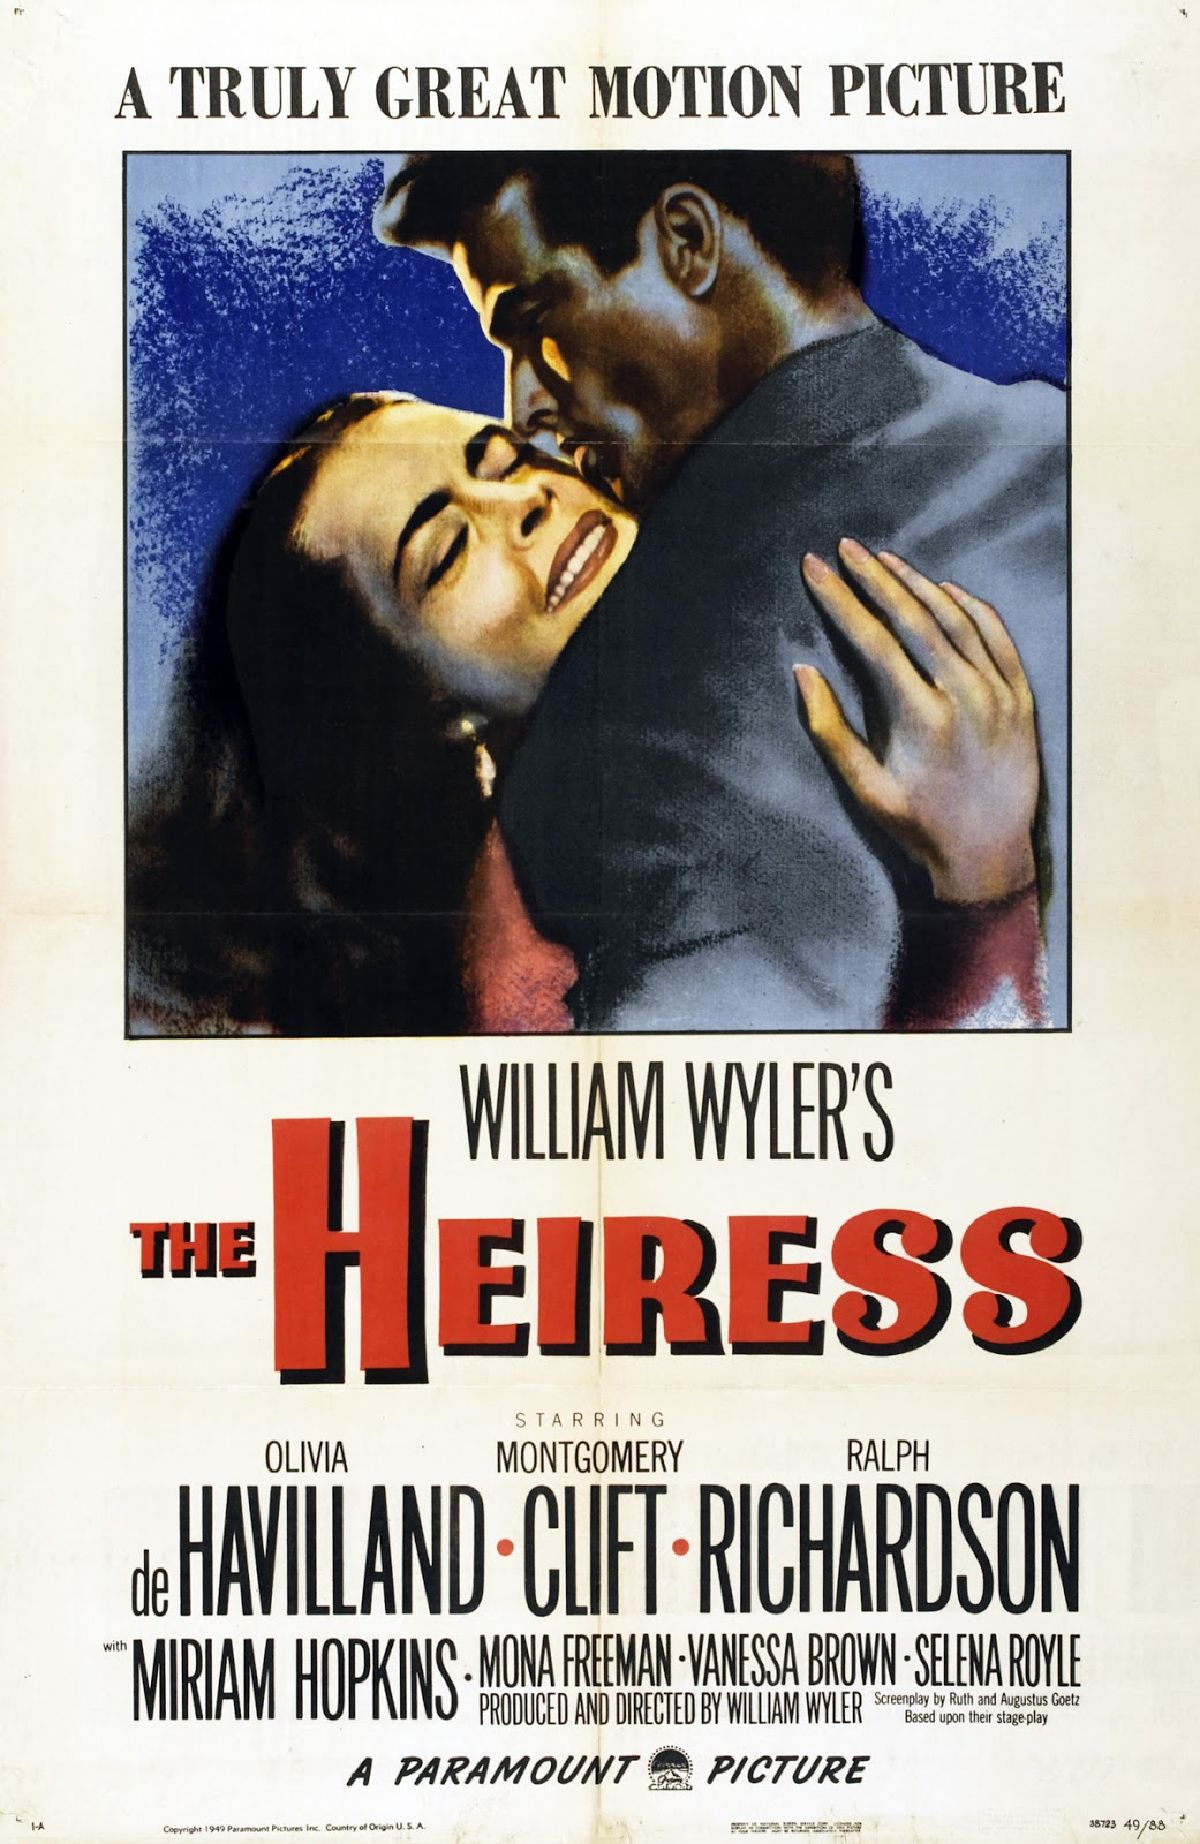 'The Heiress' movie poster